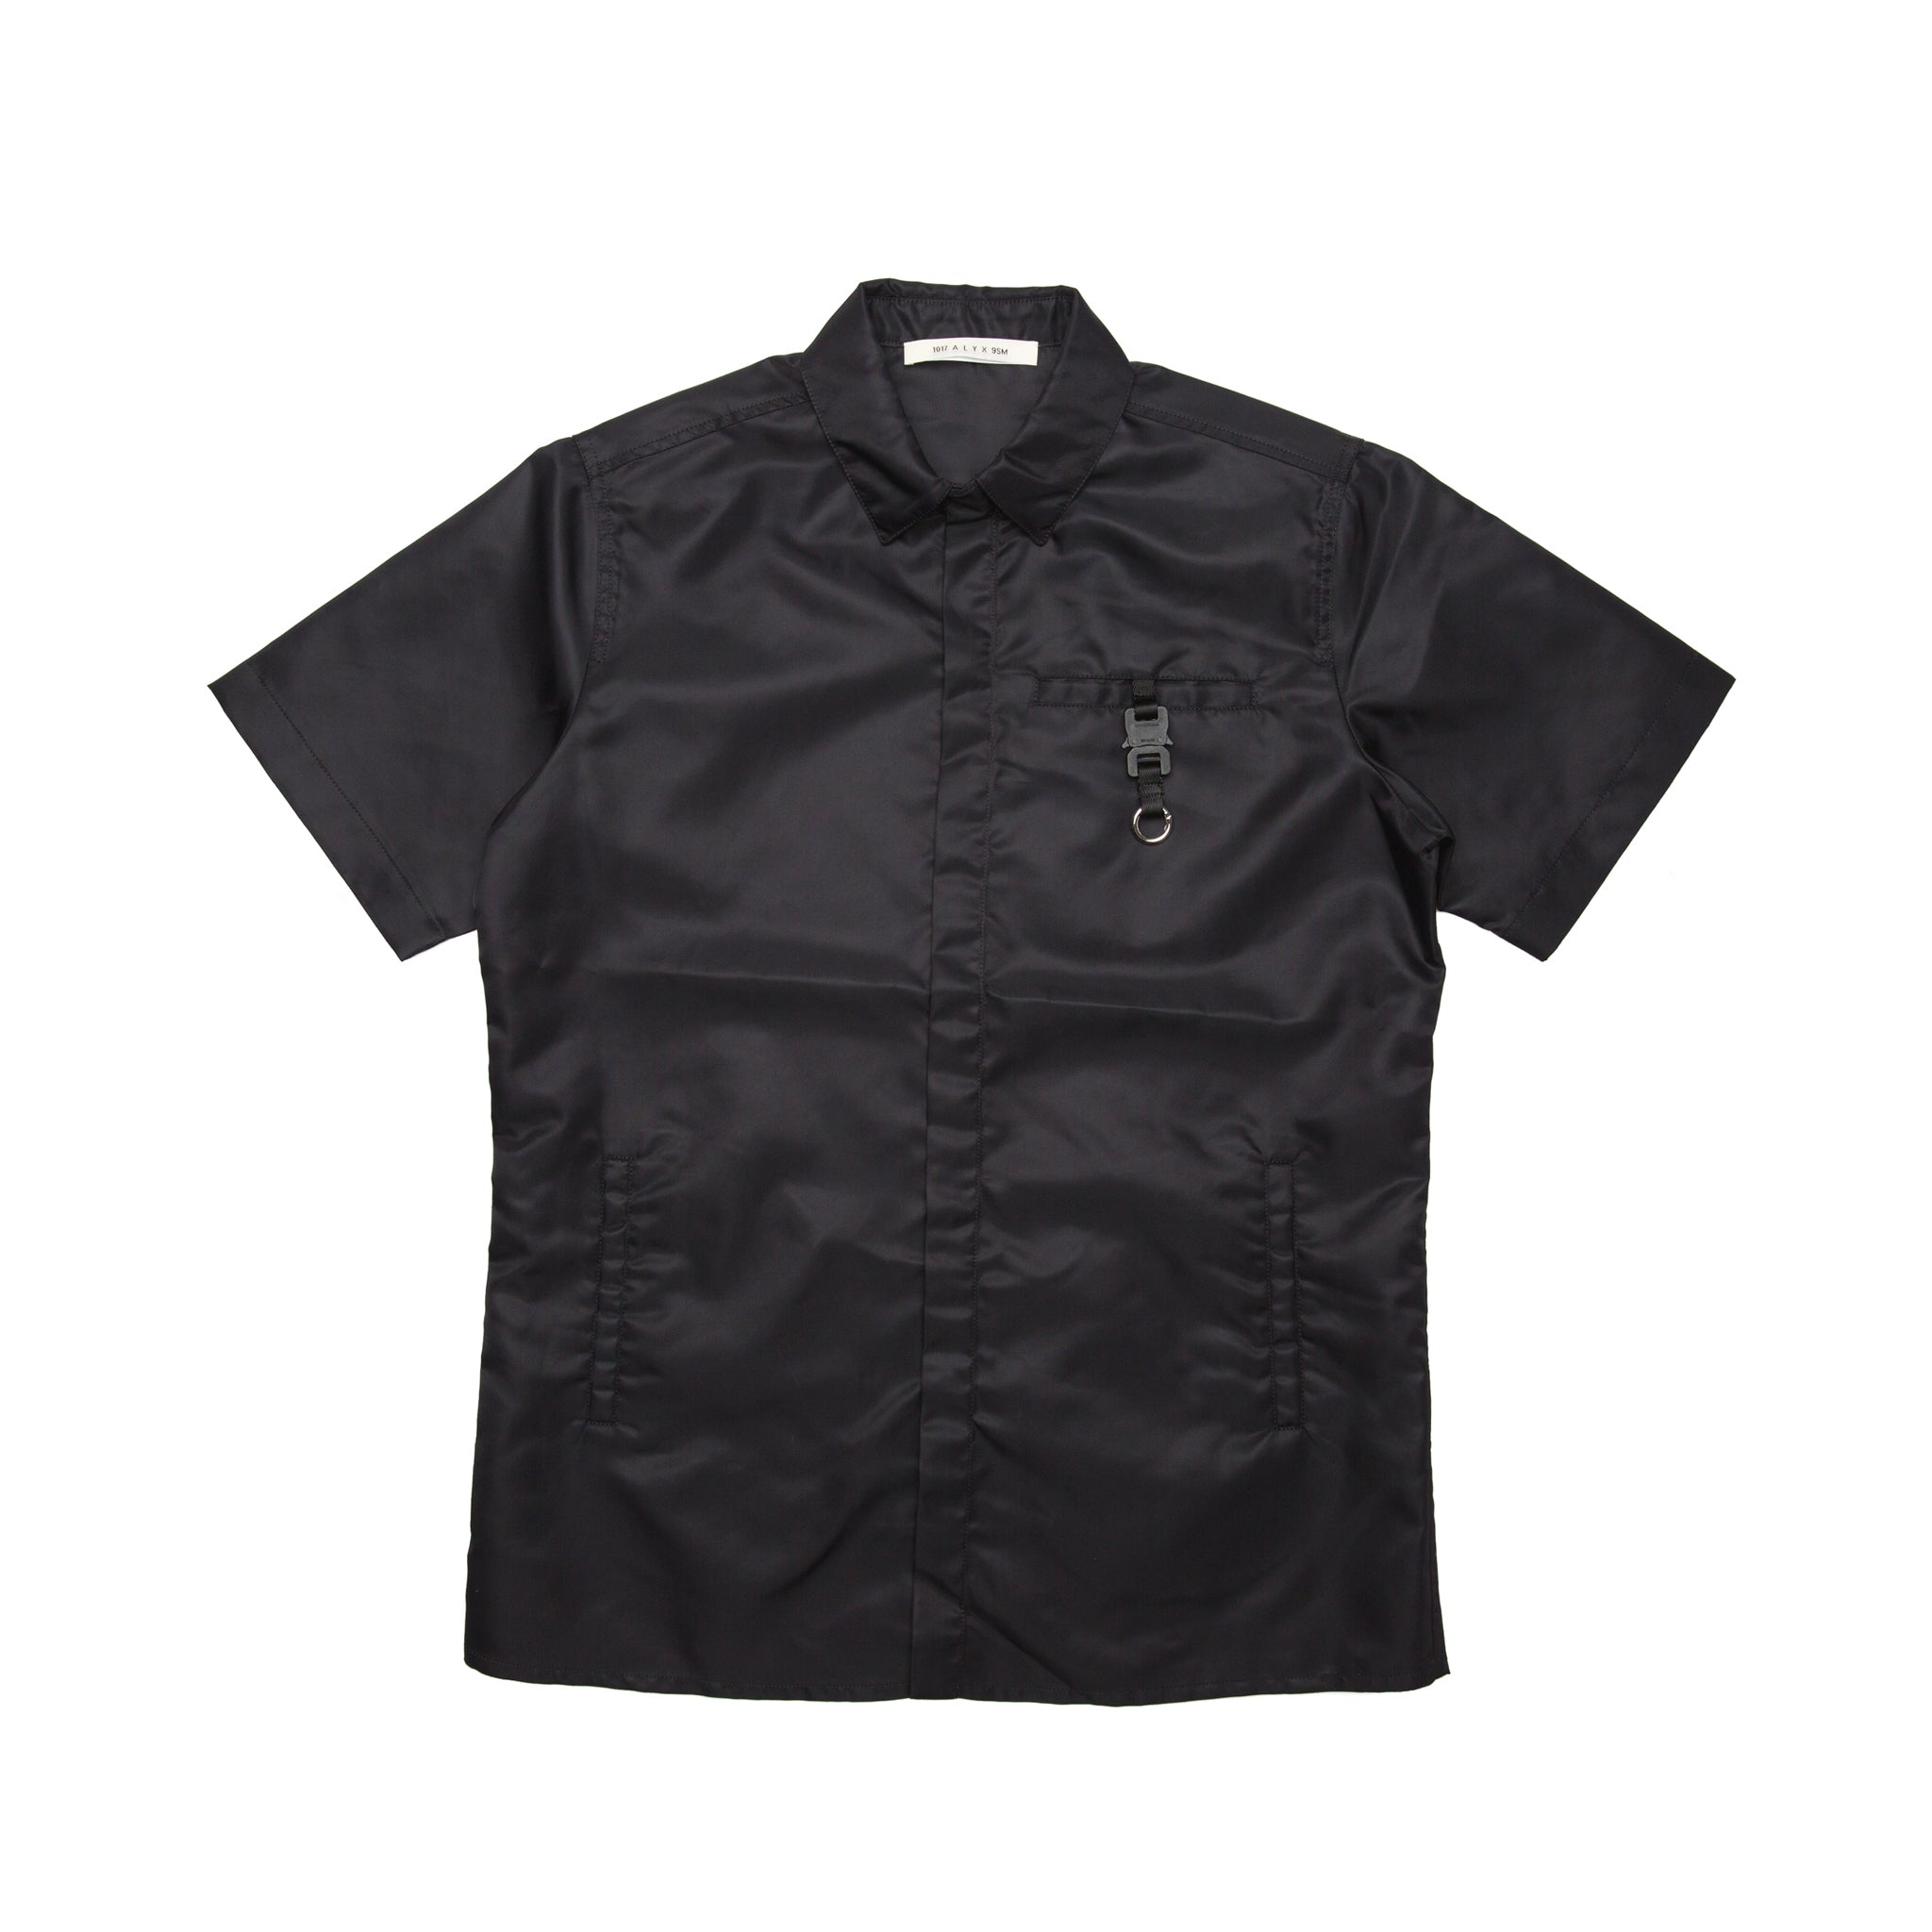 ALYX | BLACK S/S BUTTON UP W/ BUCKLE